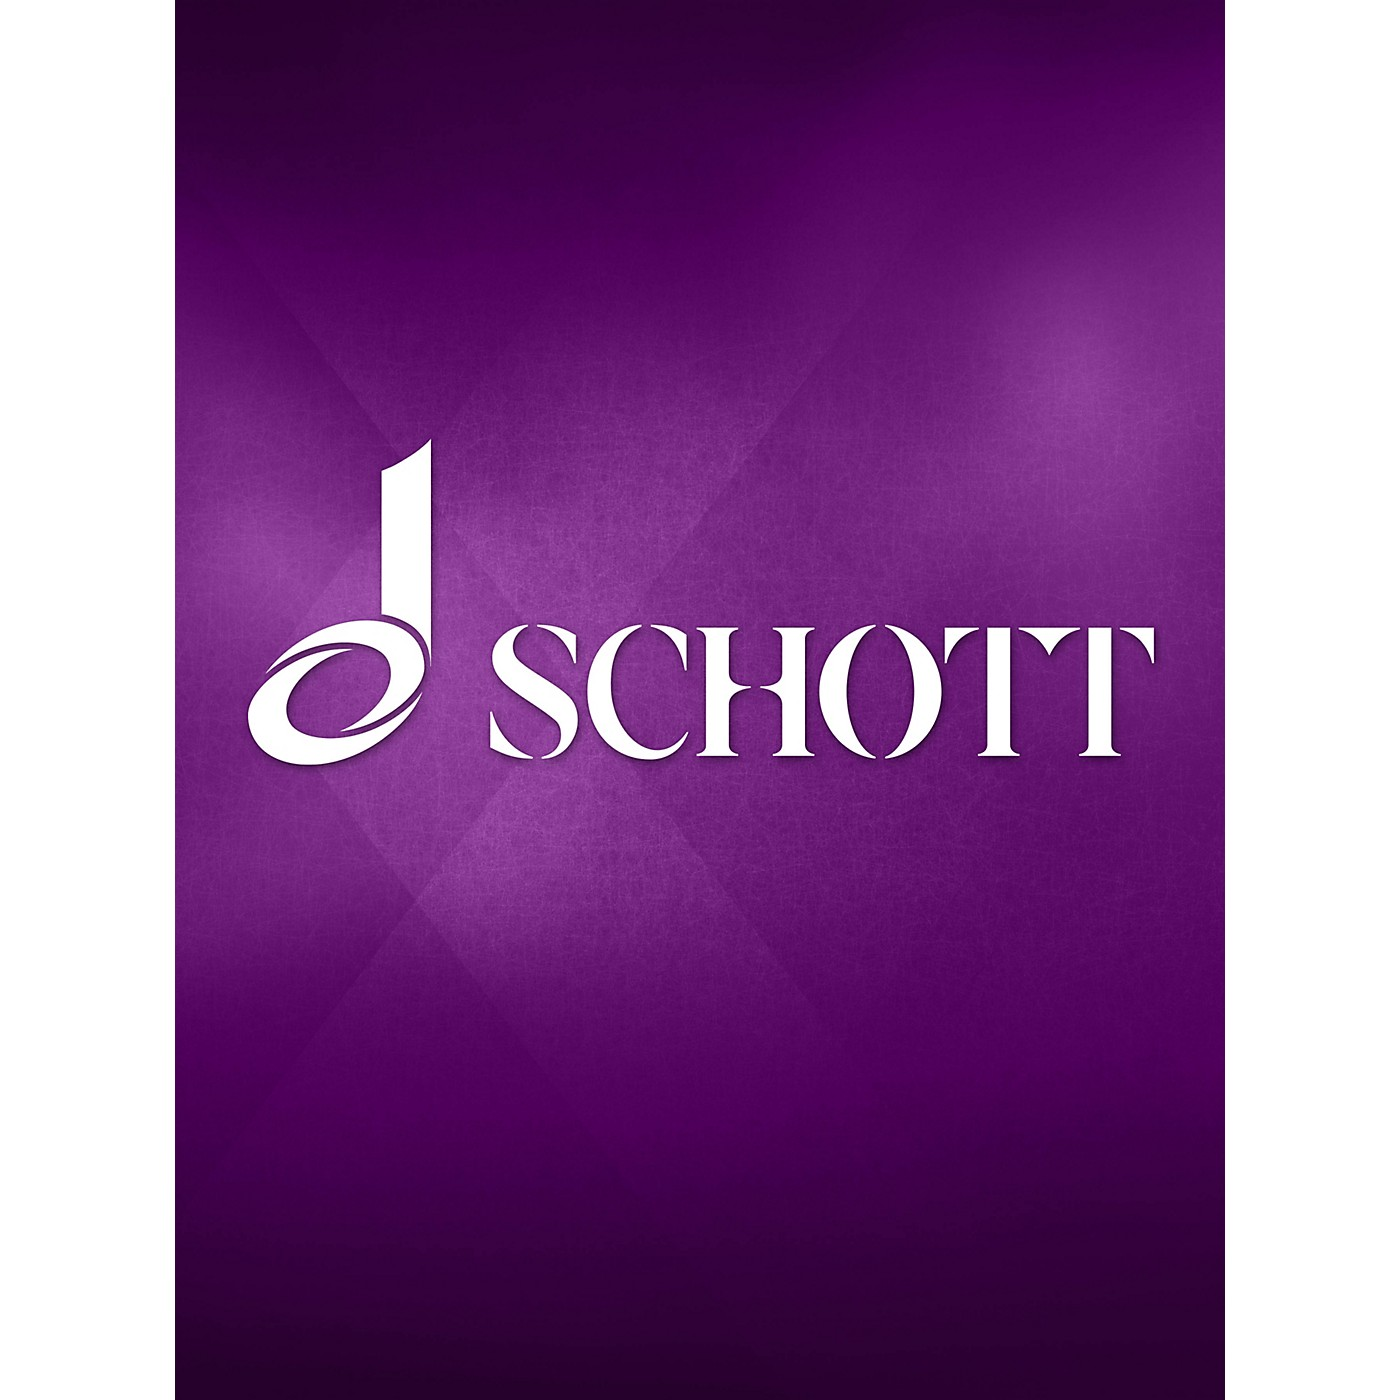 Schott Mundharmonikas (German Text) Schott Series thumbnail